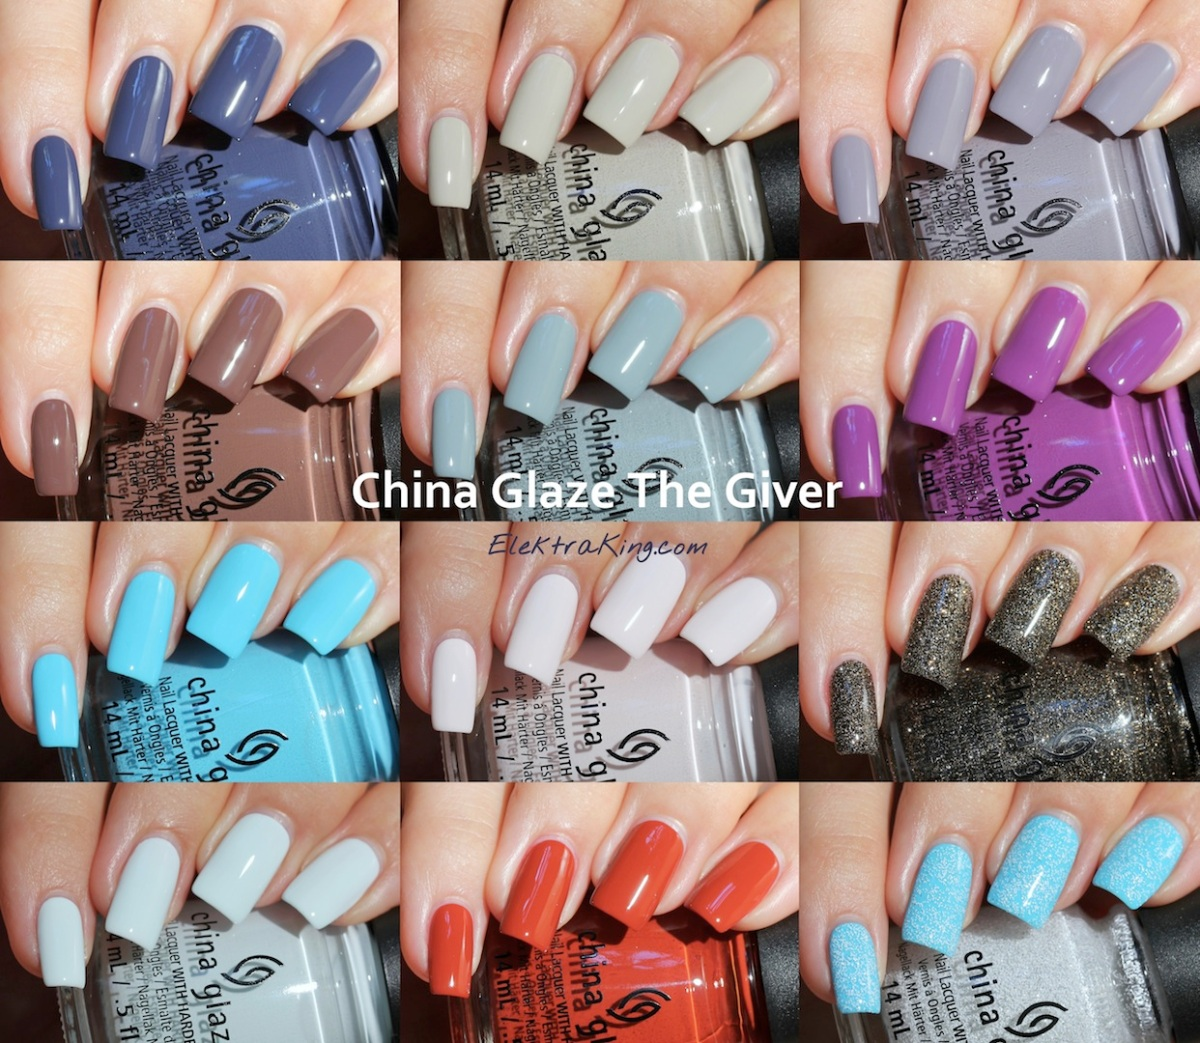 China Glaze The Giver Collection - Swatches & Review